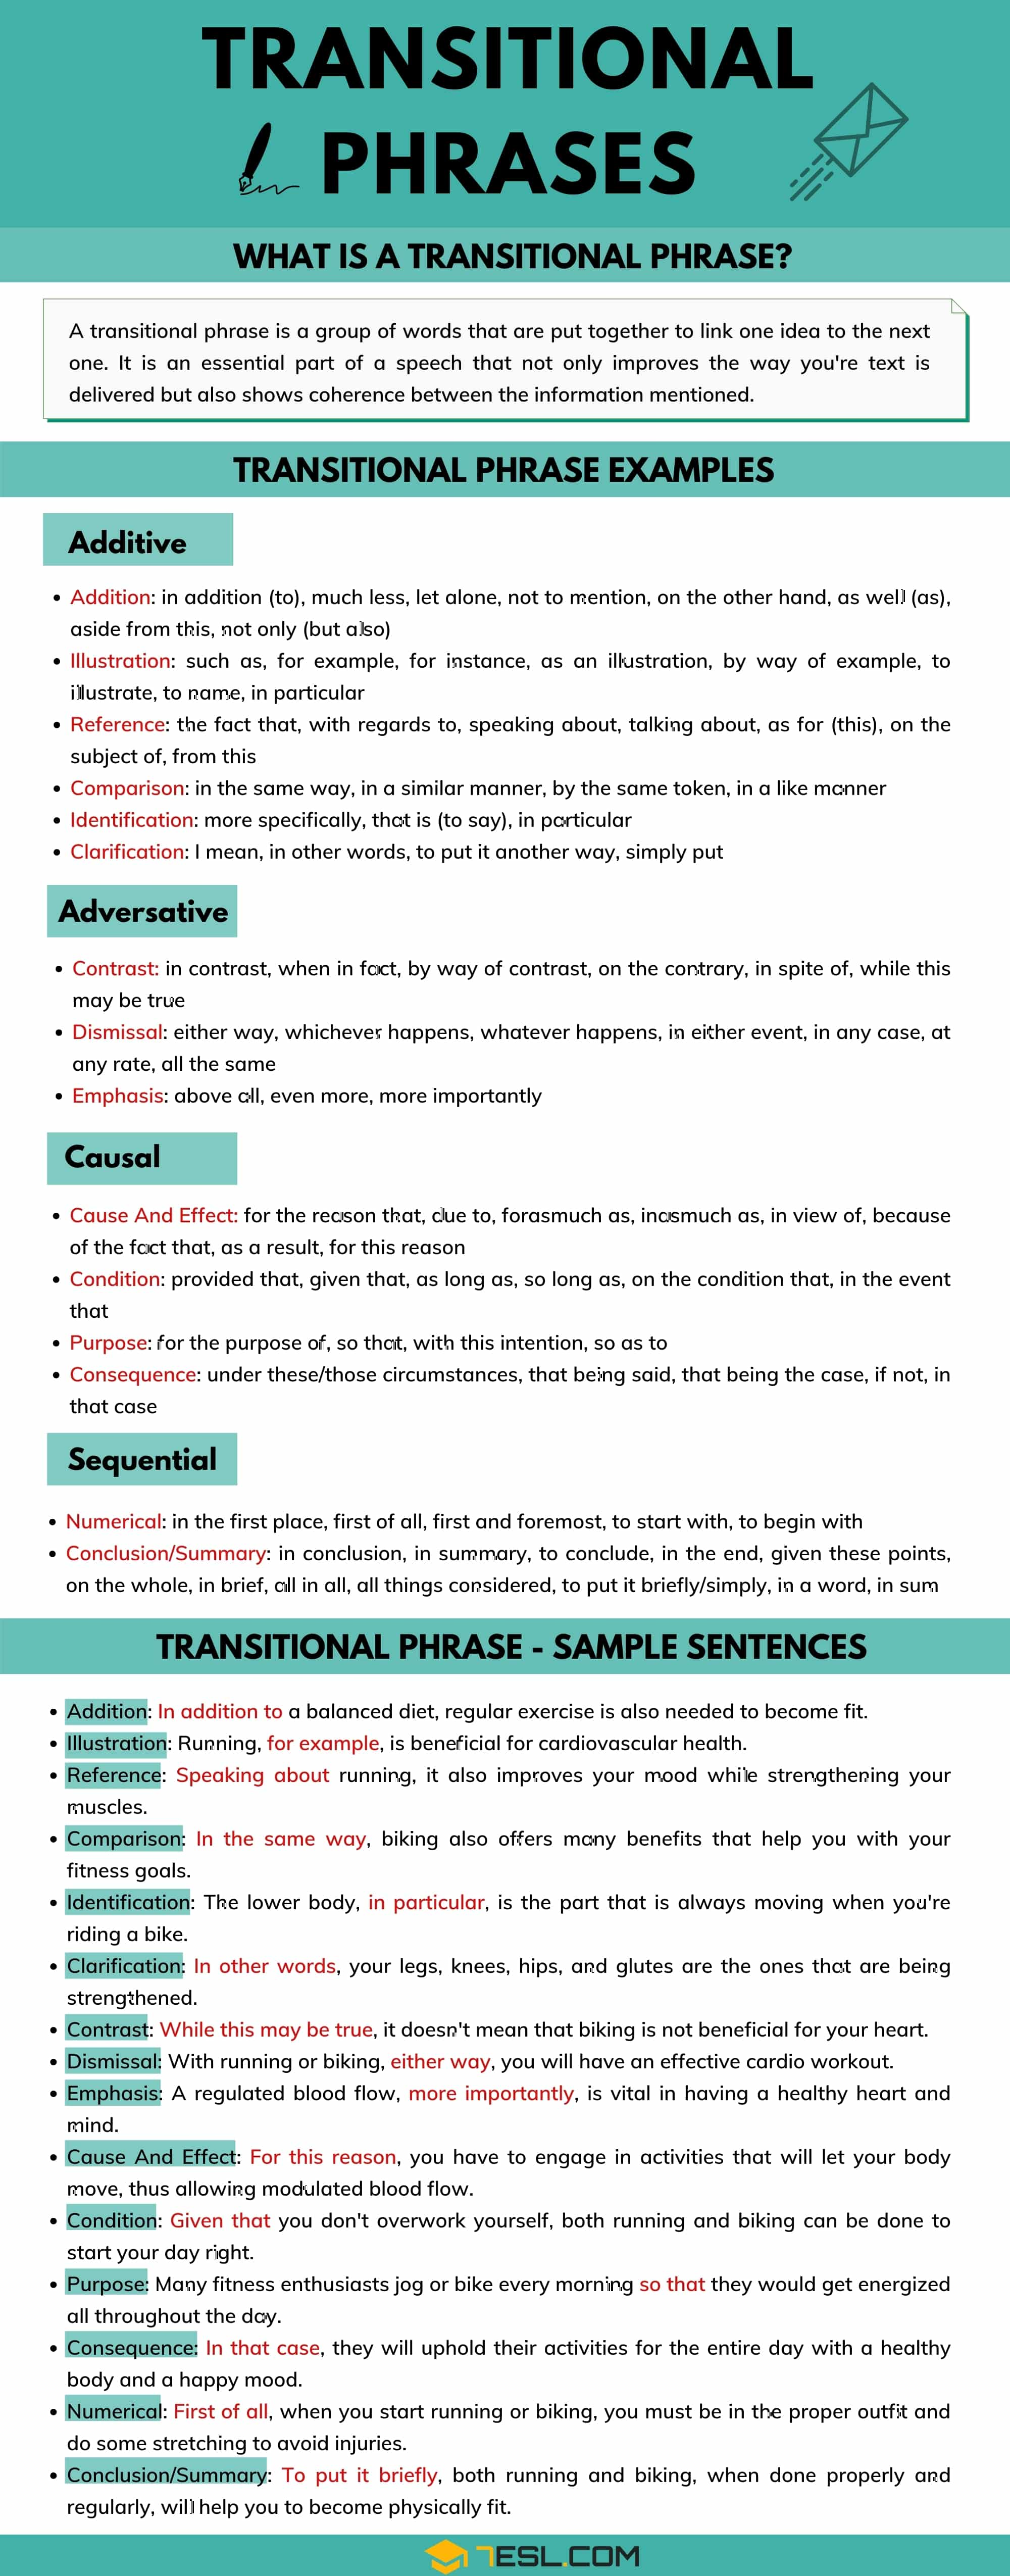 Transitional Phrases: List of Useful Transitional Phrases to Keep Your Writing Connected